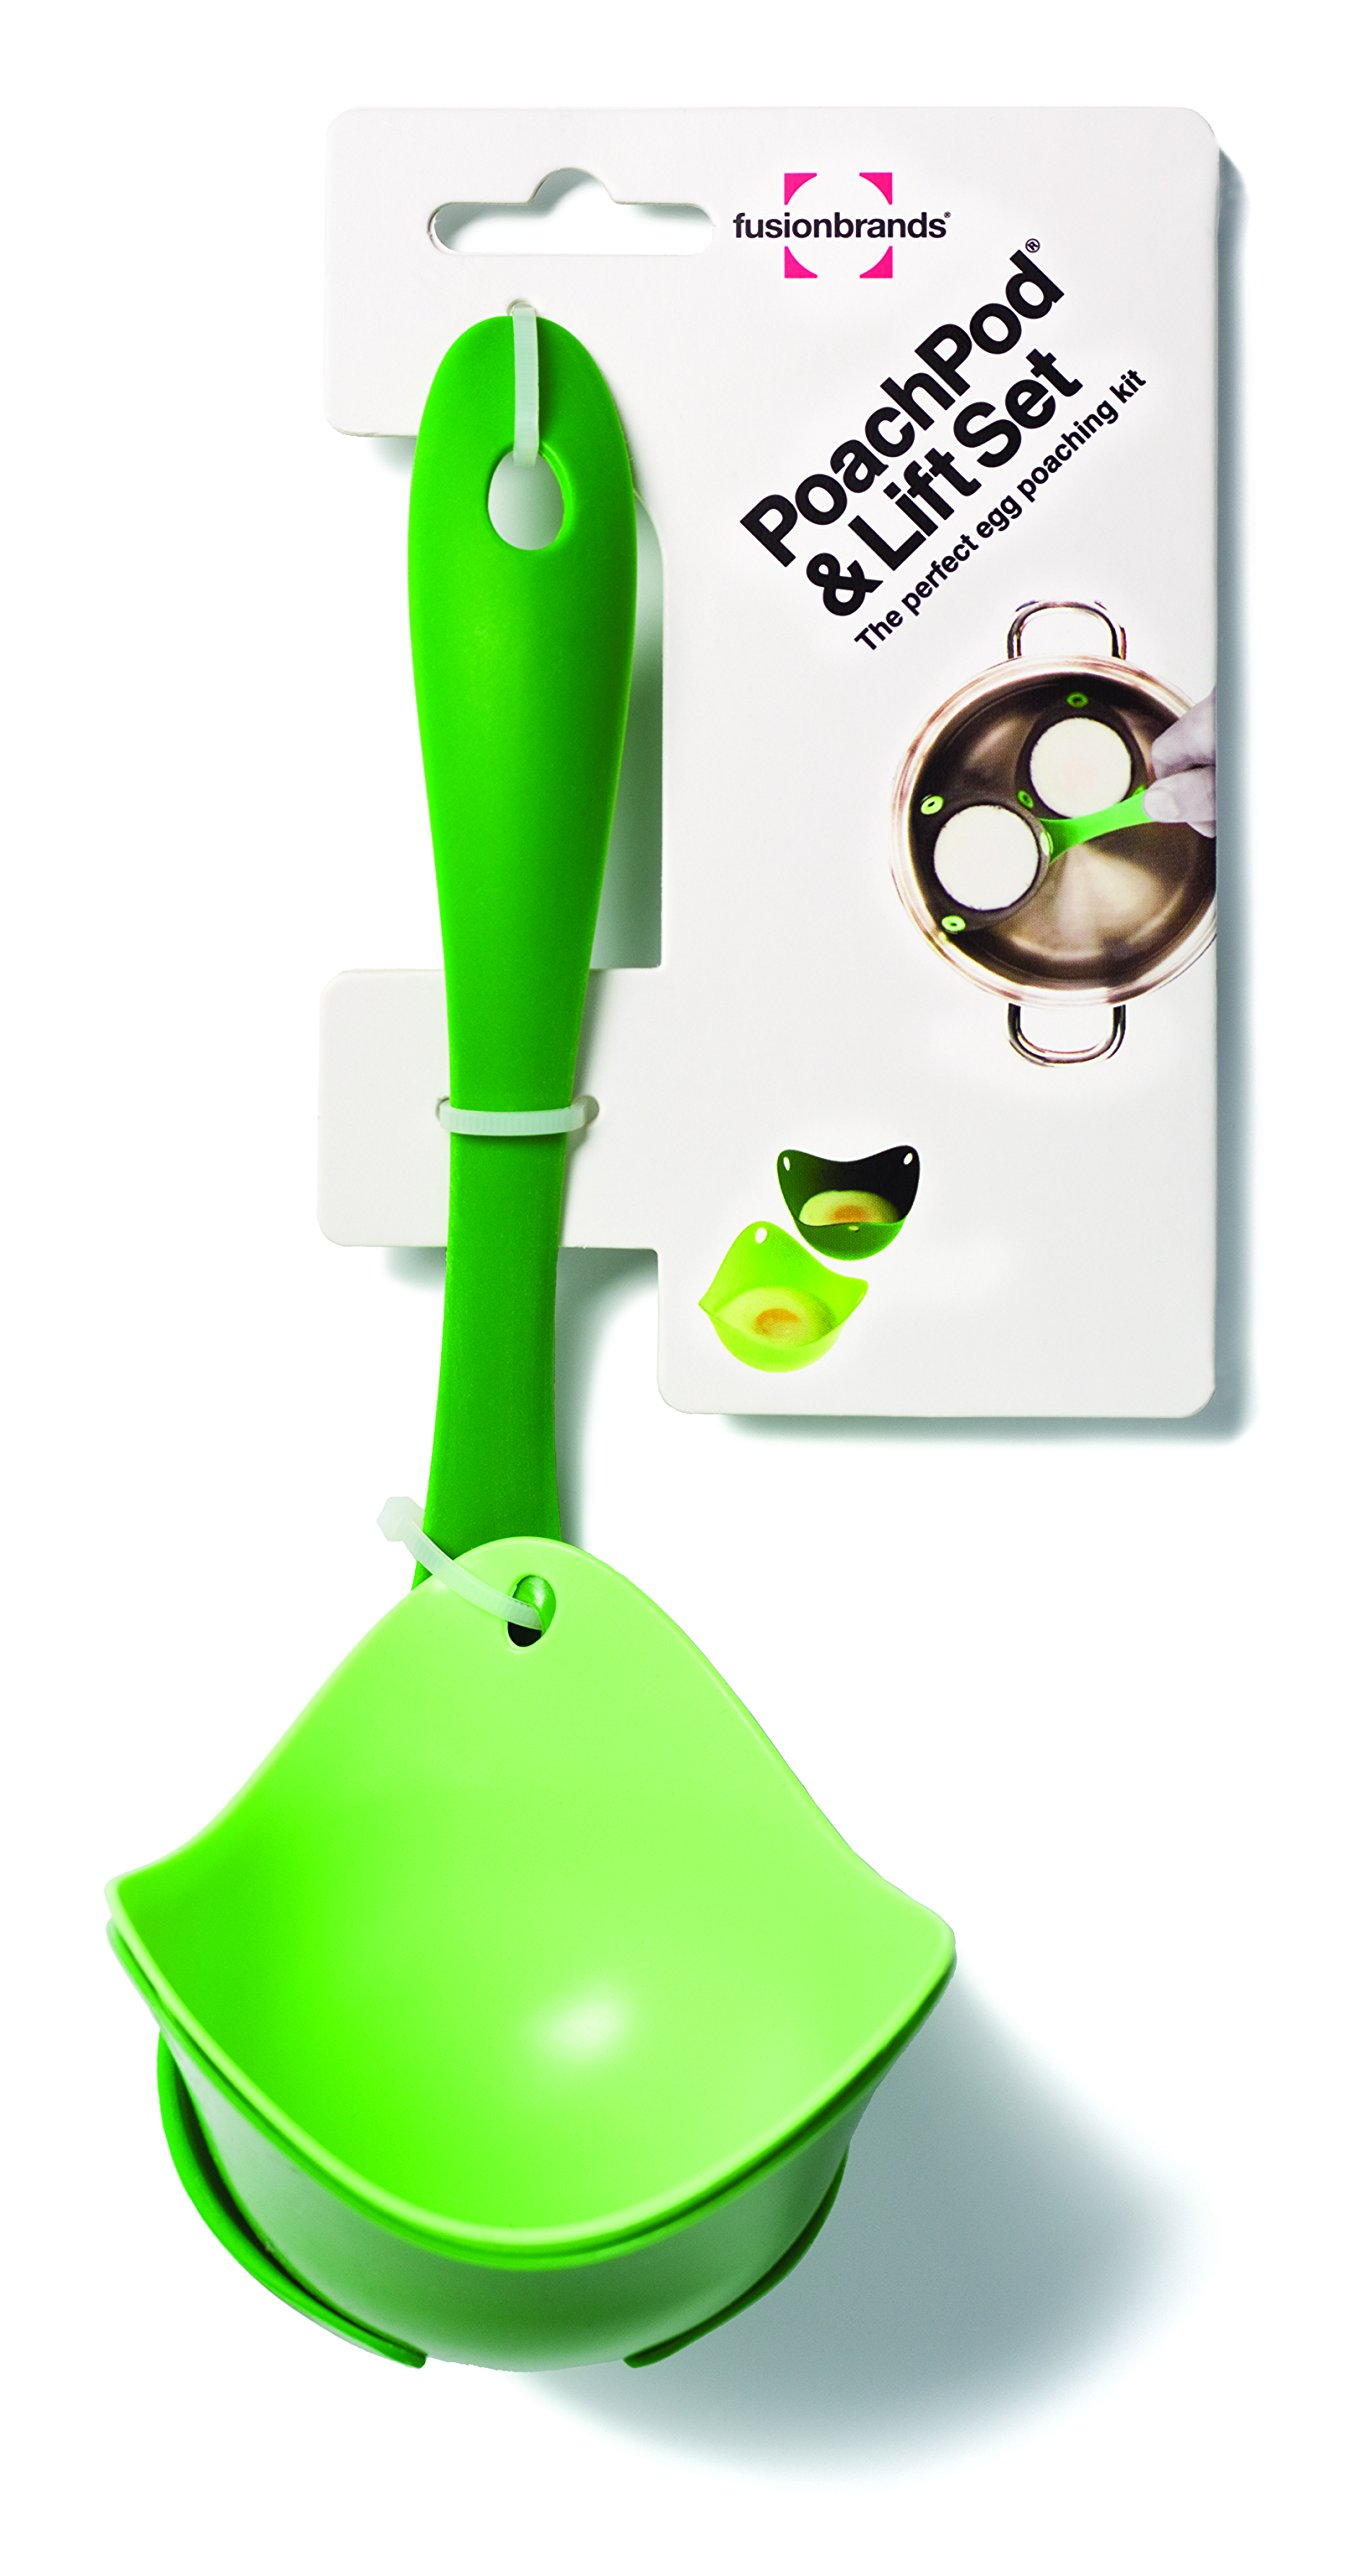 Fusionbrands PoachPod Poaching Set Includes 2 Pods for Poaching Eggs and 1 Lifting Tool,  Green